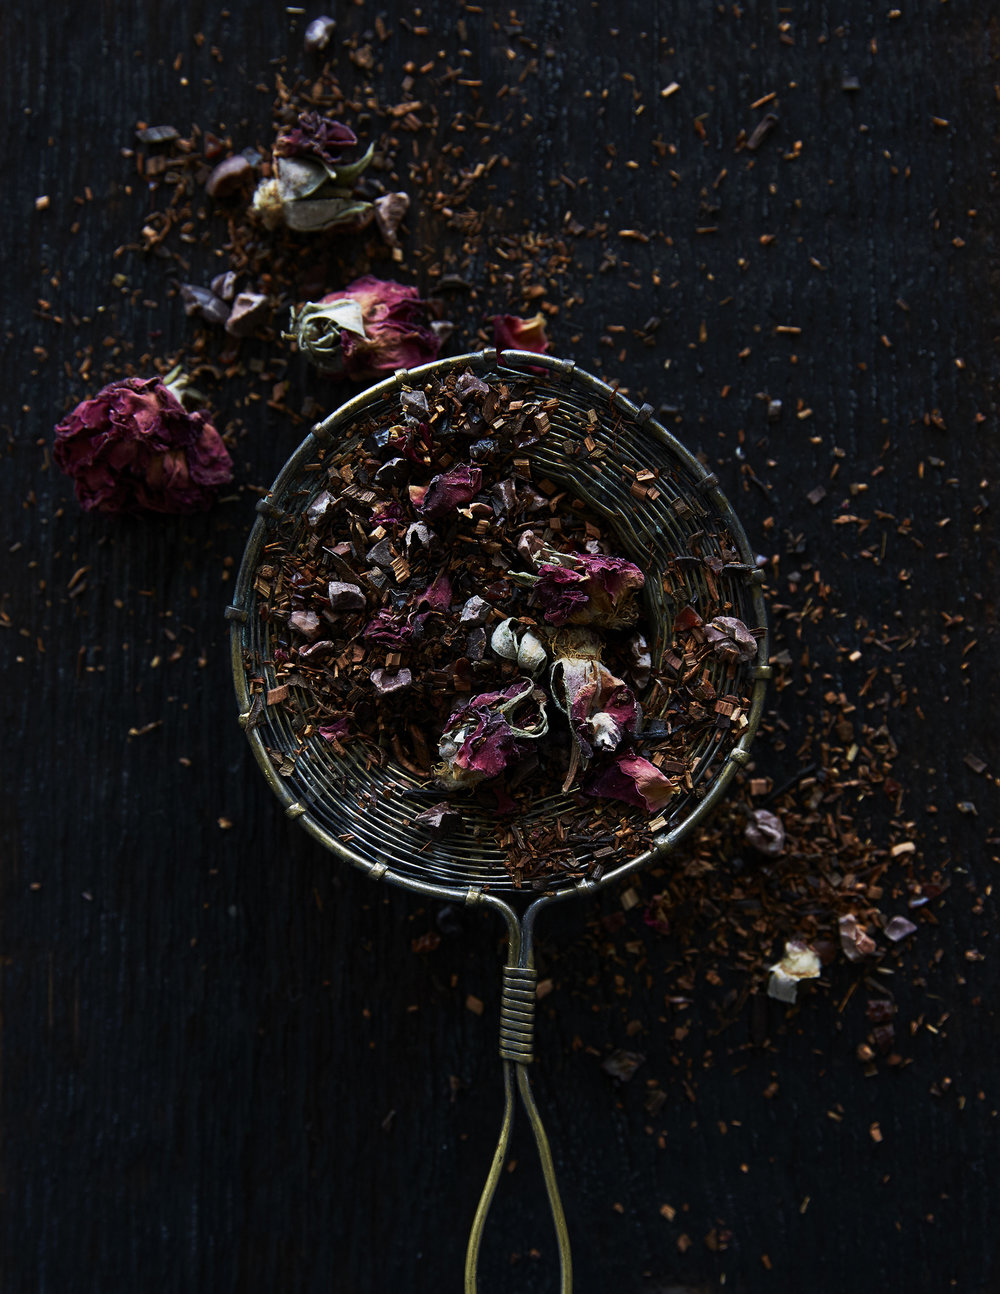 Burggraaf_Charity-Seattle_Food_Photographer-Loose_Tea.jpg